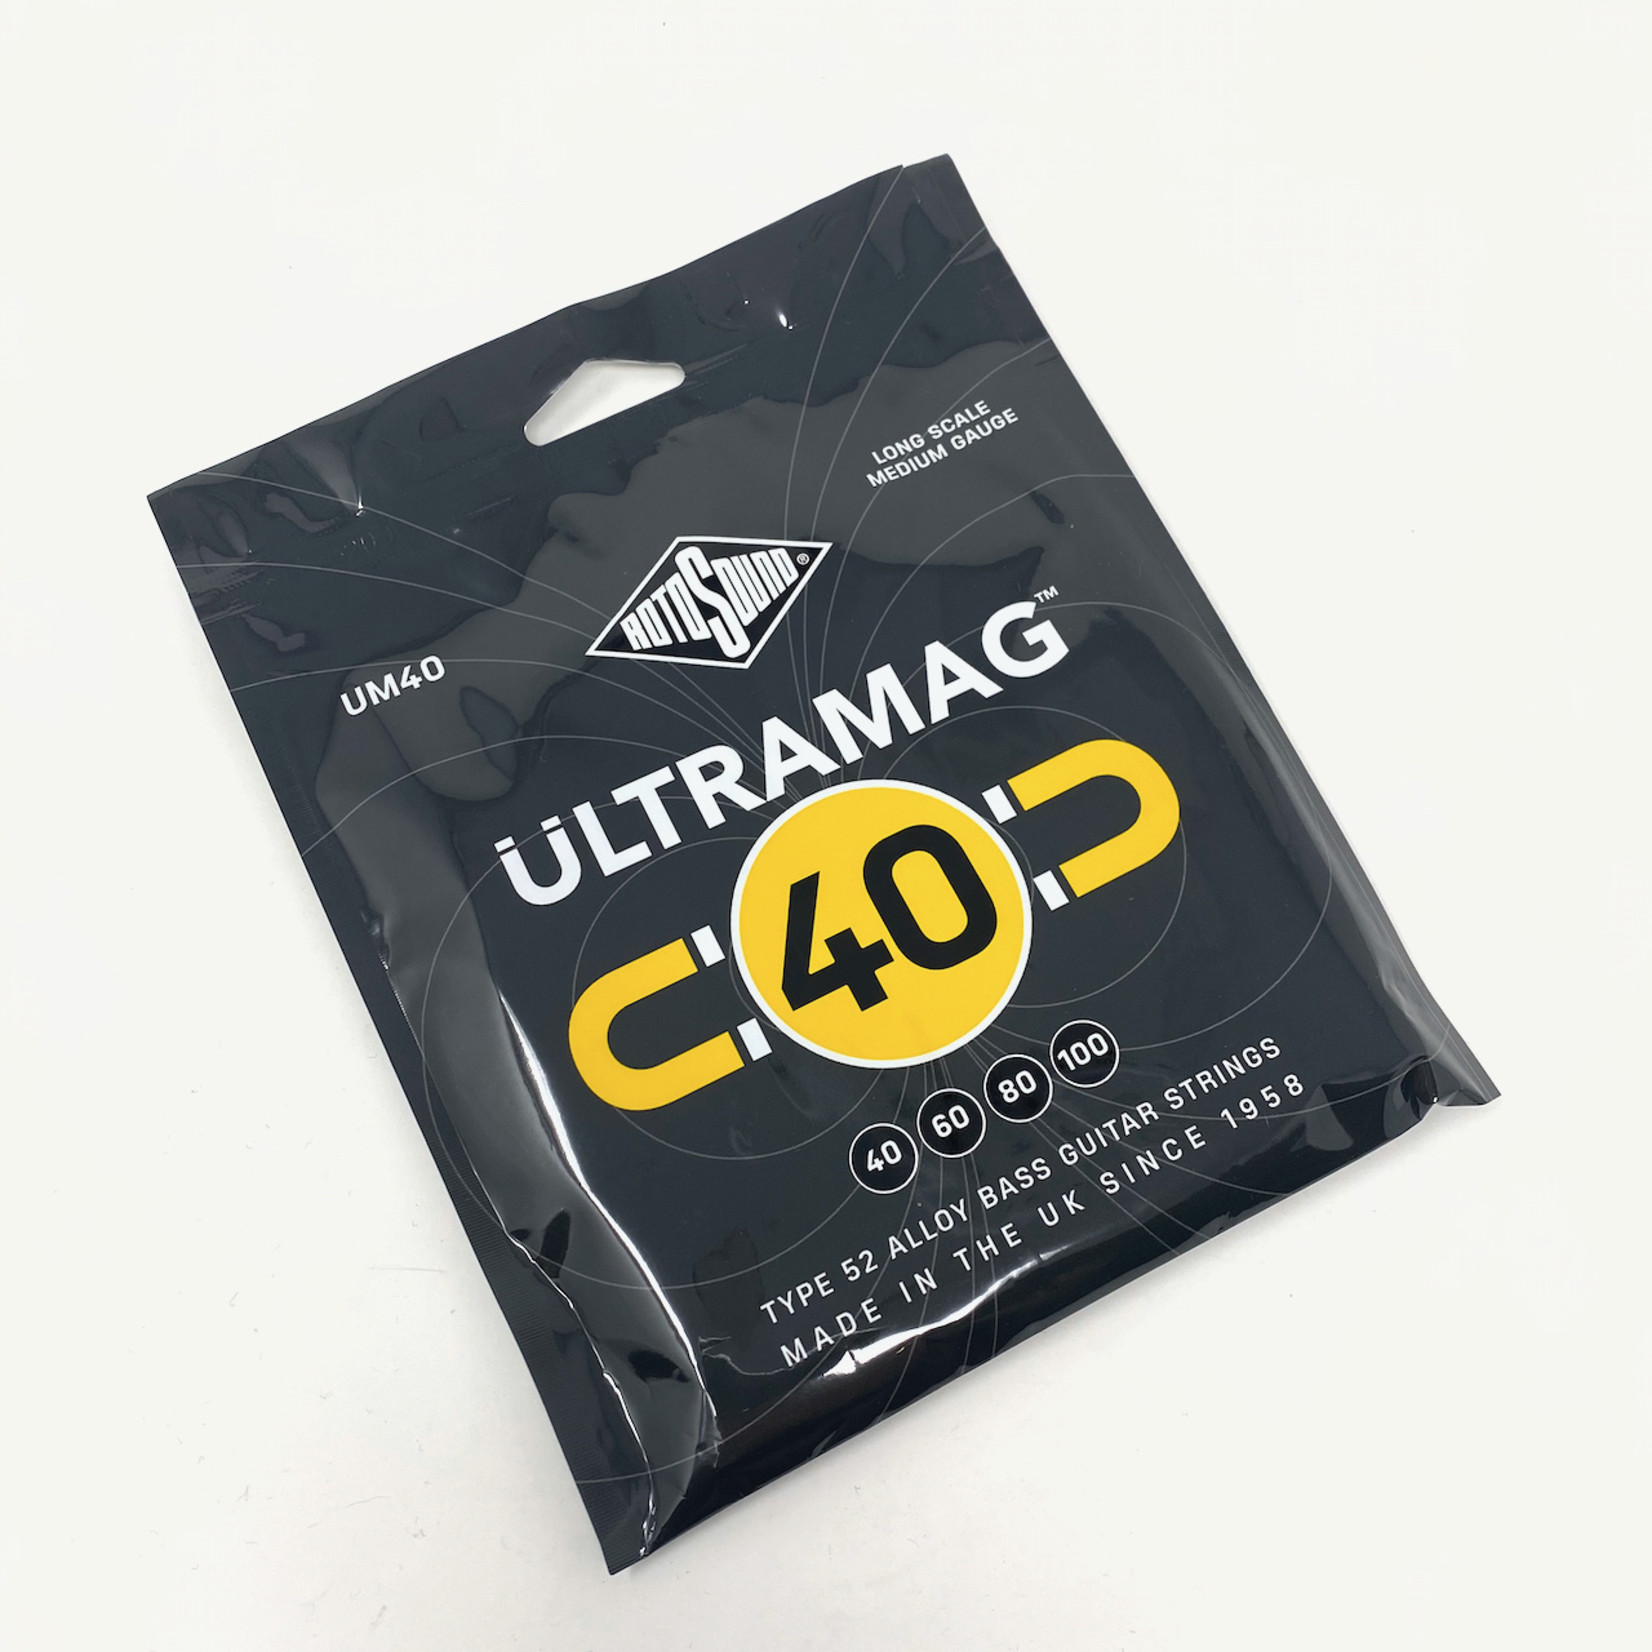 Rotosound Rotosound Ultramag 40 - Type 52 Alloy Bass Guitar Strings, Long Scale (40 60 80 100) - NEW